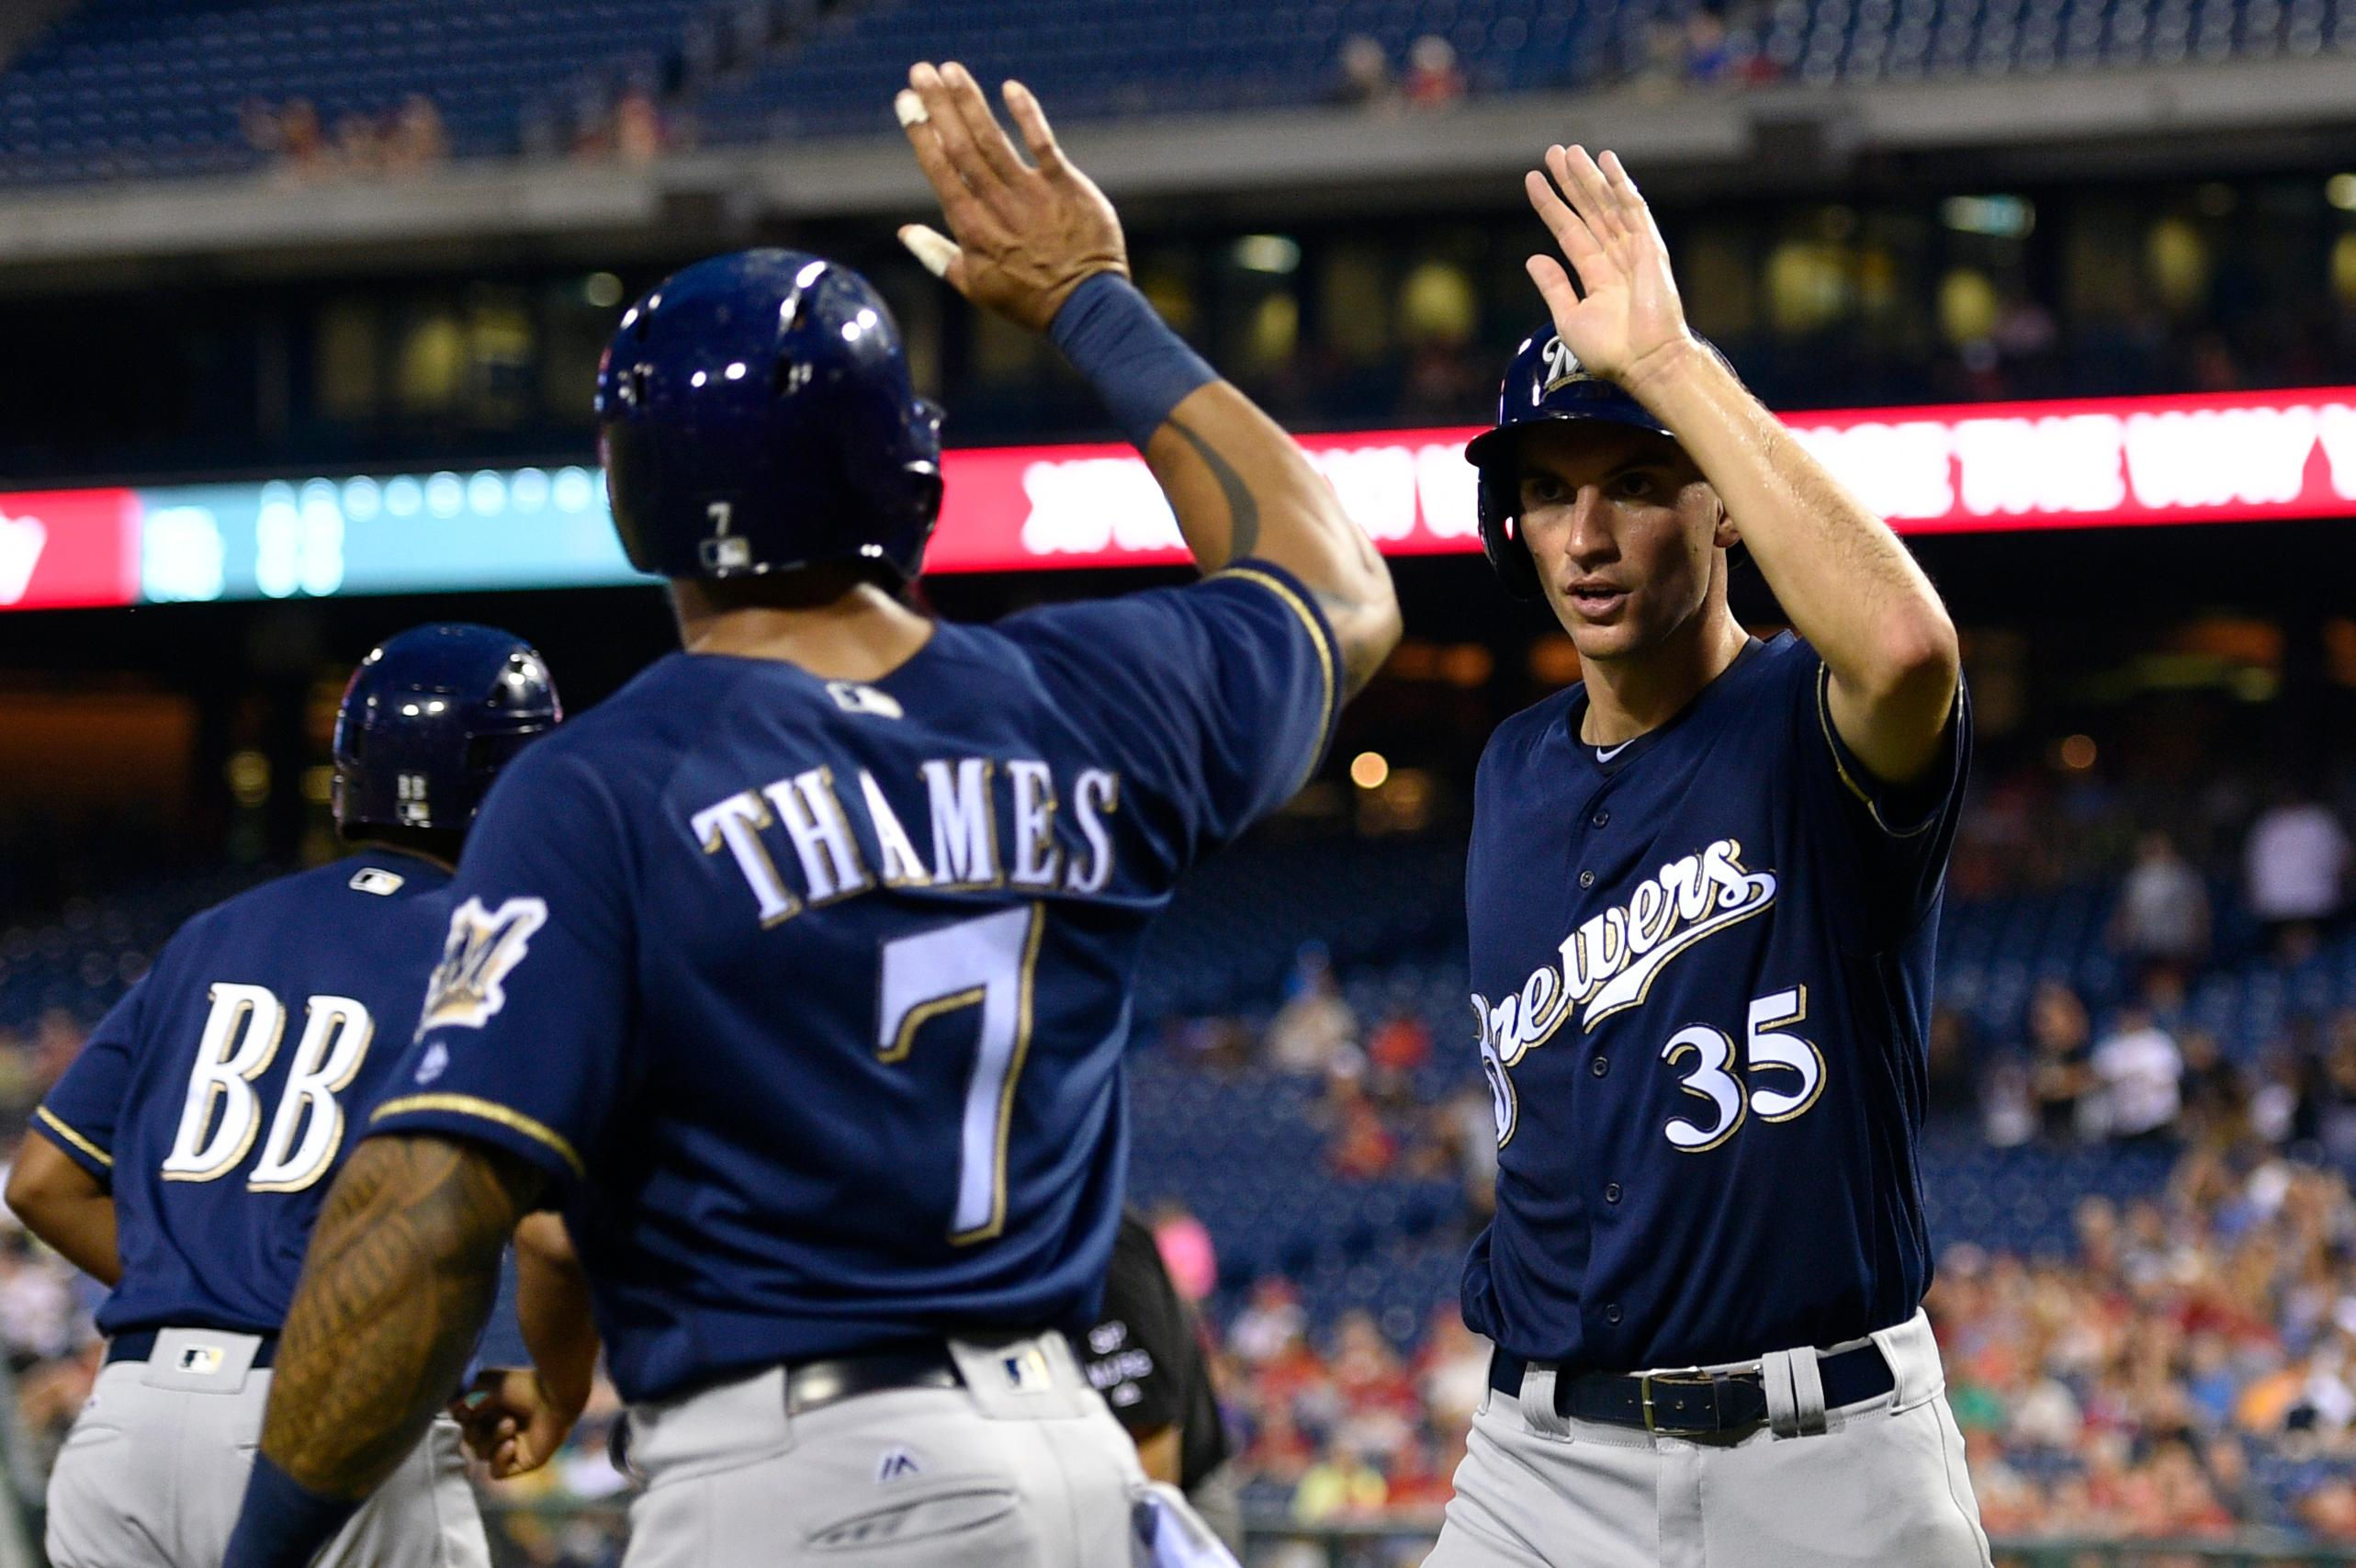 Milwaukee Brewers' Brent Suter, right, high-fives Eric Thames (7) after scoring on a Ryan Braun double during the third inning against the Philadelphia Phillies, Saturday, July 22, 2017, in Philadelphia. (AP Photo/Derik Hamilton)